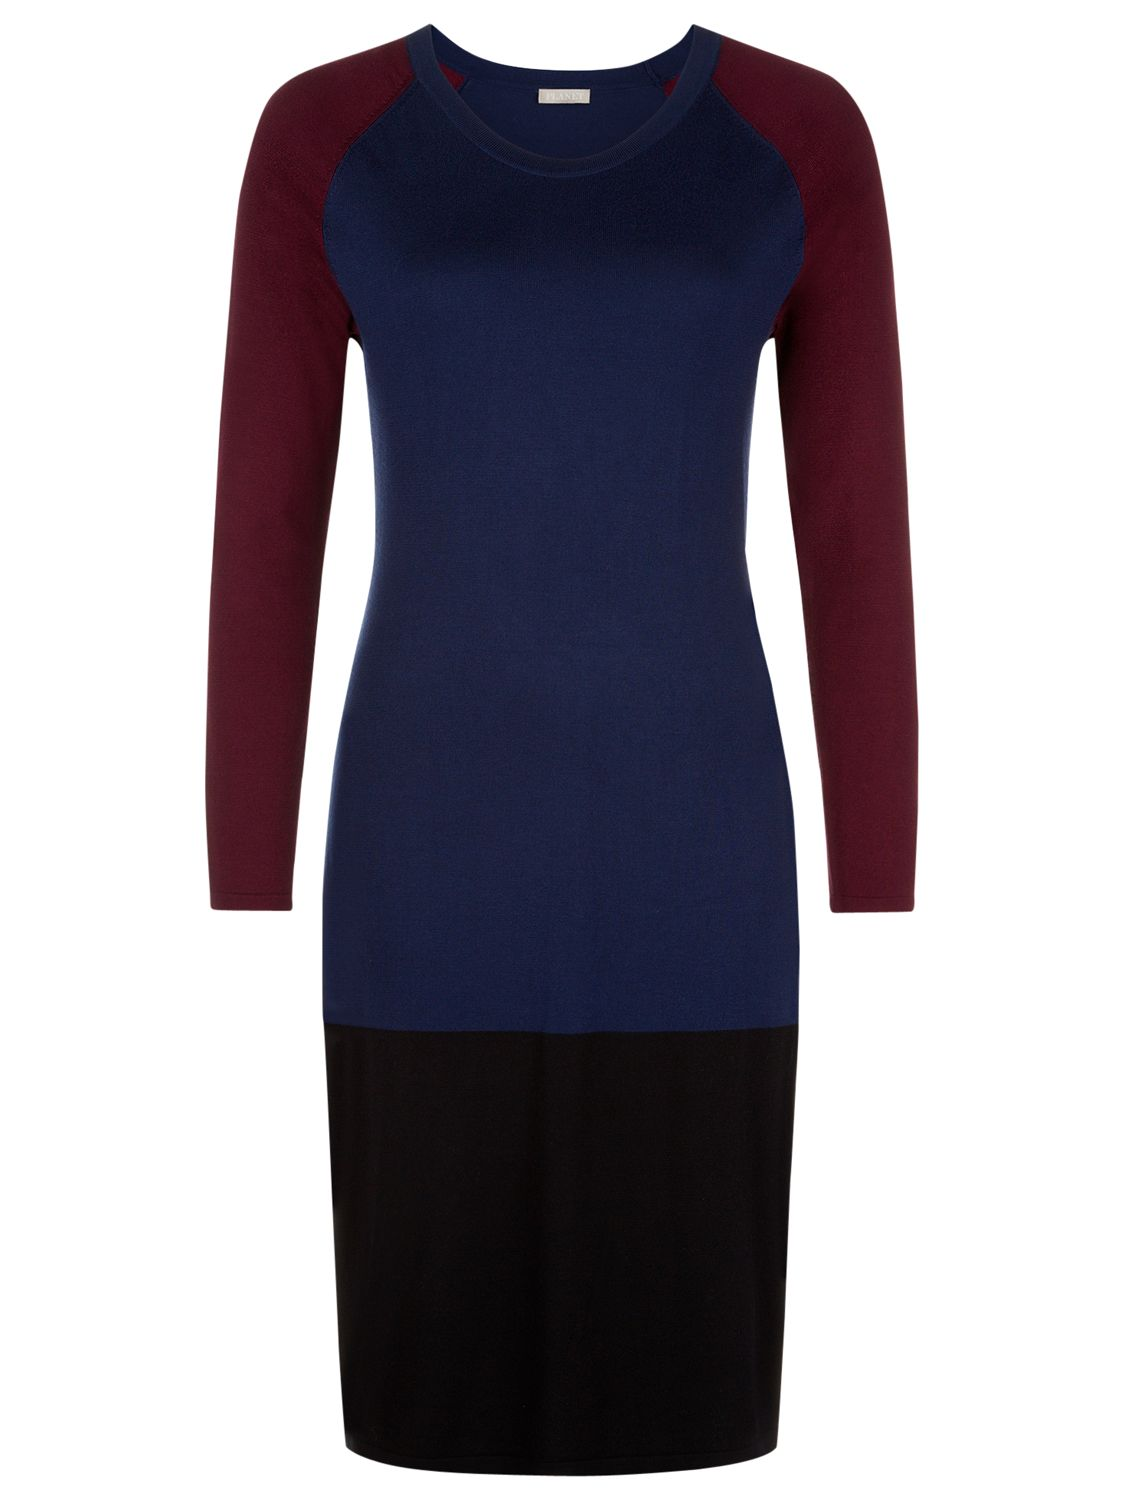 planet colour block knit dress multi, planet, colour, block, knit, dress, multi, 14|12, clearance, womenswear offers, womens dresses offers, women, plus size, inactive womenswear, new reductions, womens dresses, special offers, workwear offers, 1703512